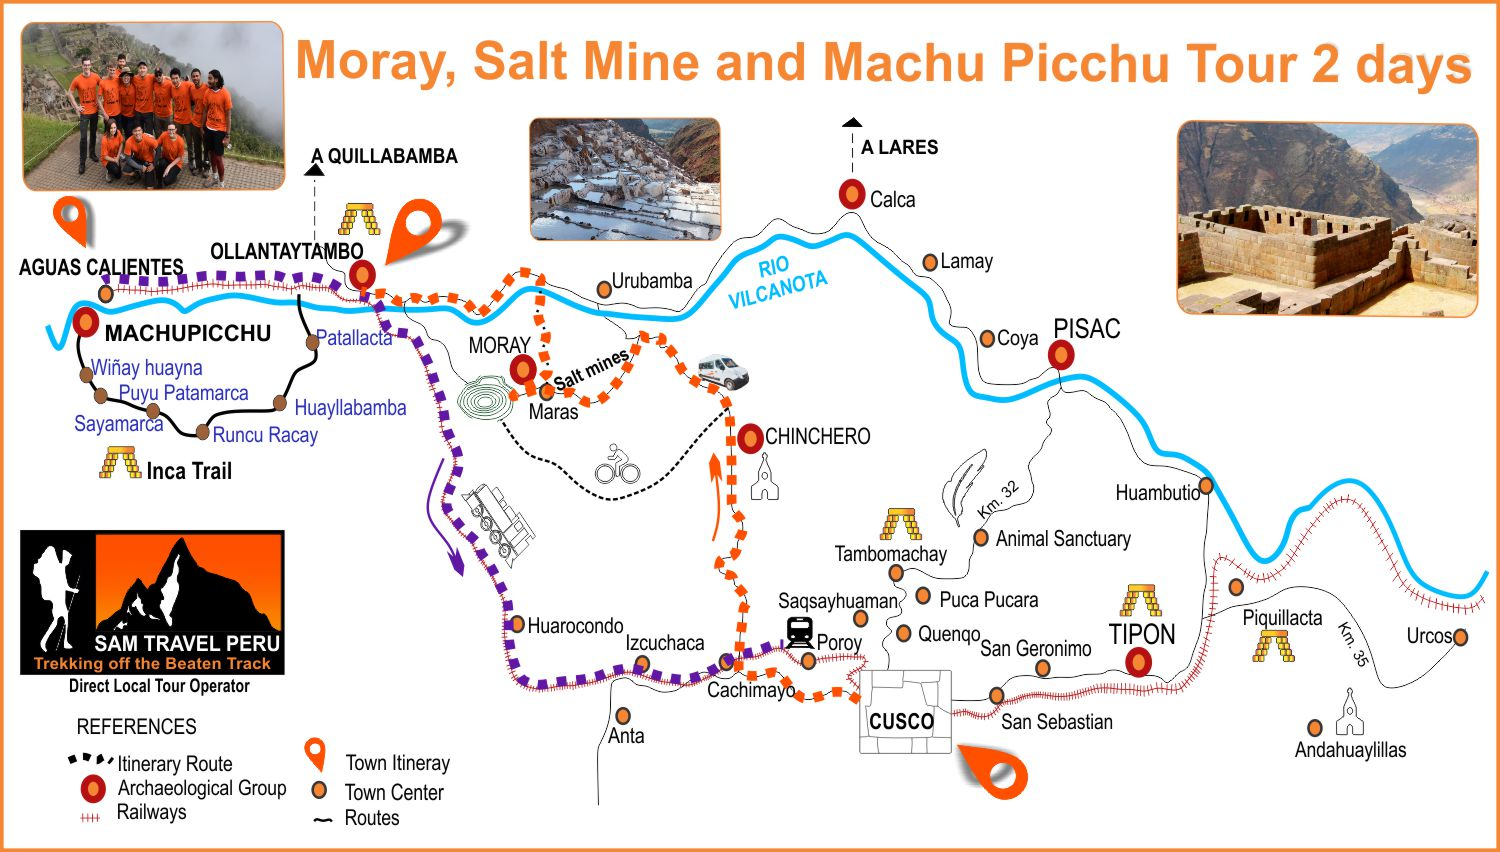 Moray Salt Mine and Machu Picchu Tour 2 days